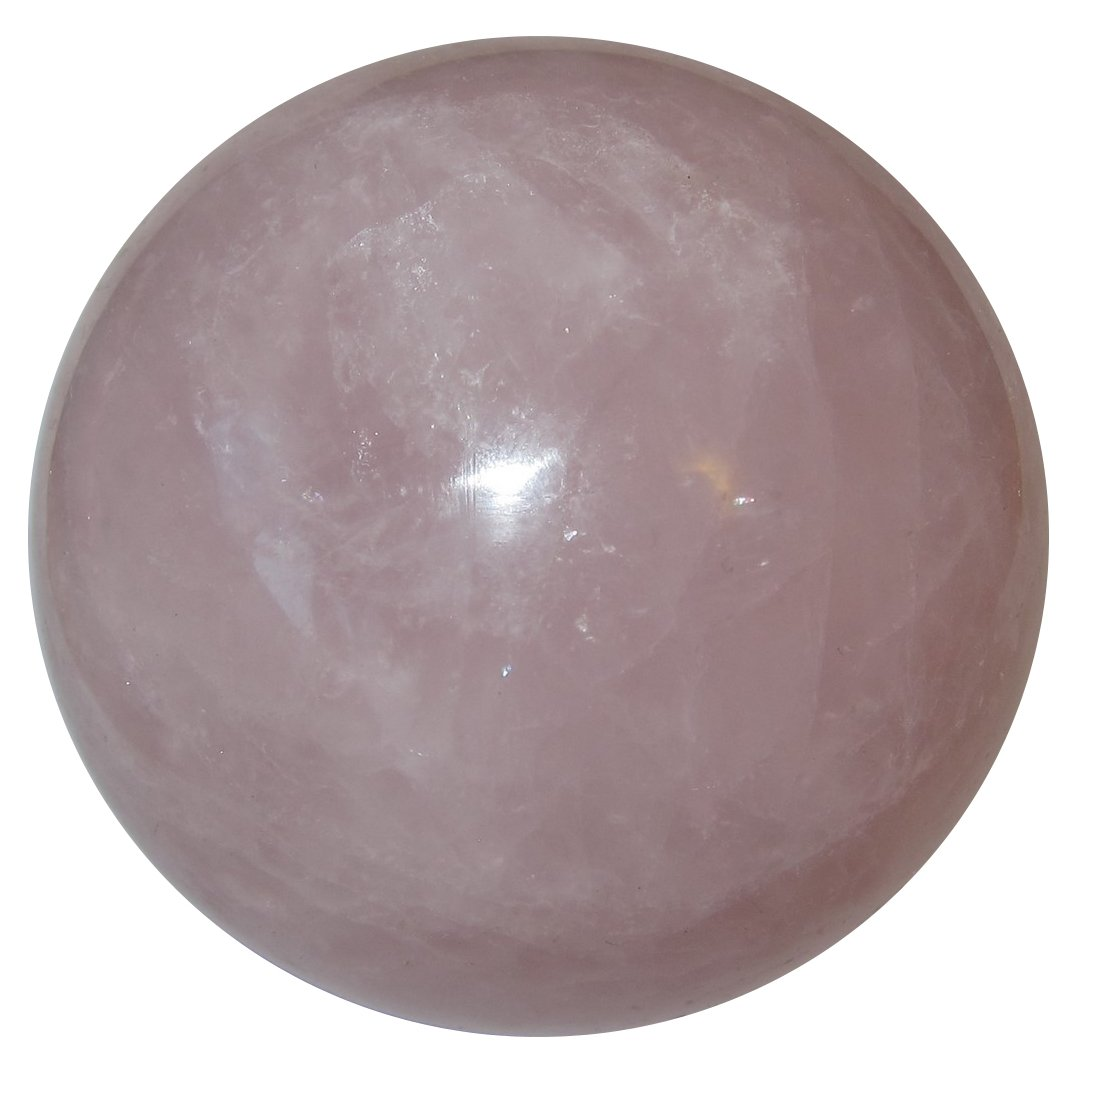 Rose Quartz Ball 57 Pink Crystal Sphere Soothing Energy Healing Relaxation Stone Gem 3'' by SatinCrystals